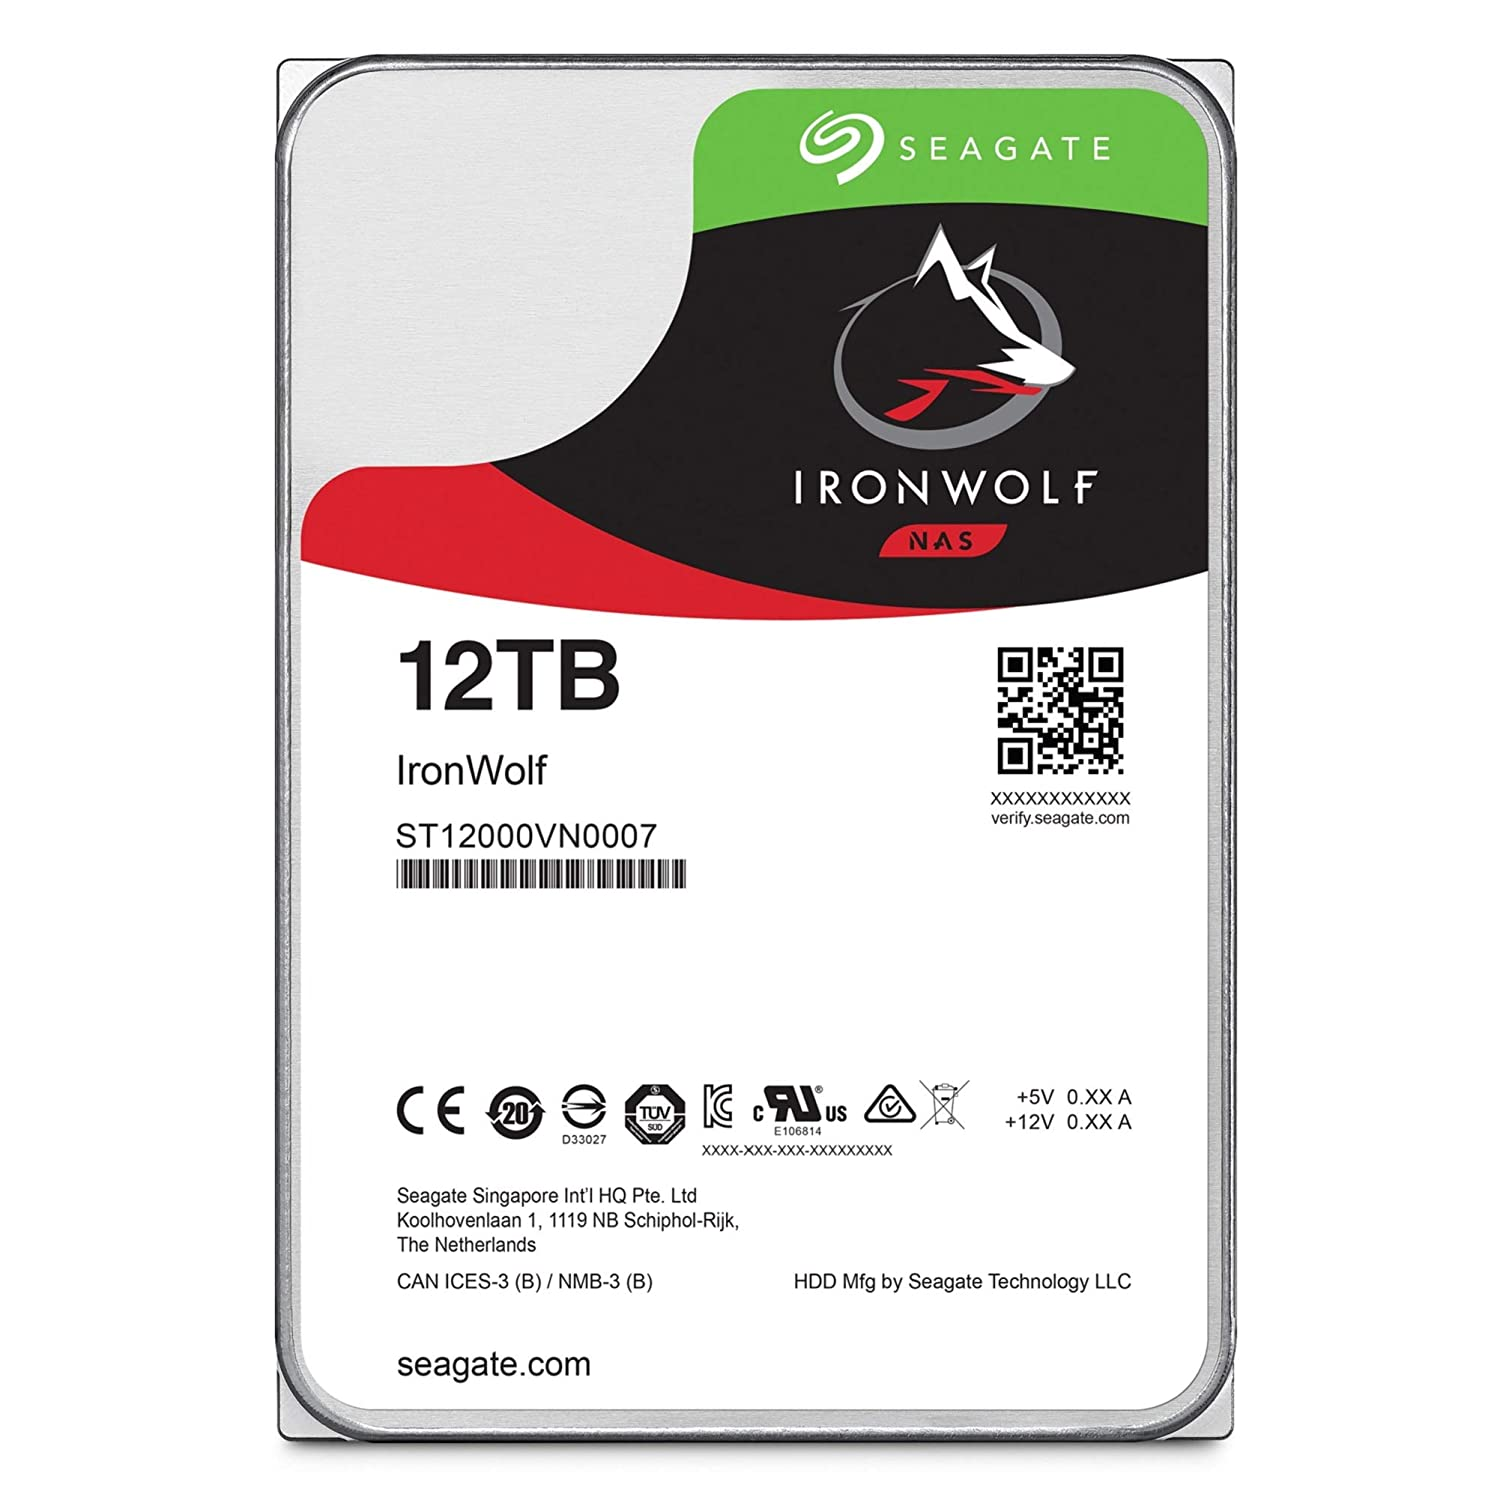 Seagate IronWolf 12TB NAS Internal Hard Drive HDD – 3.5 Inch SATA 6Gb/s 7200 RPM 256MB Cache for RAID Network Attached Storage – Frustration Free Packaging (ST12000VN0007)